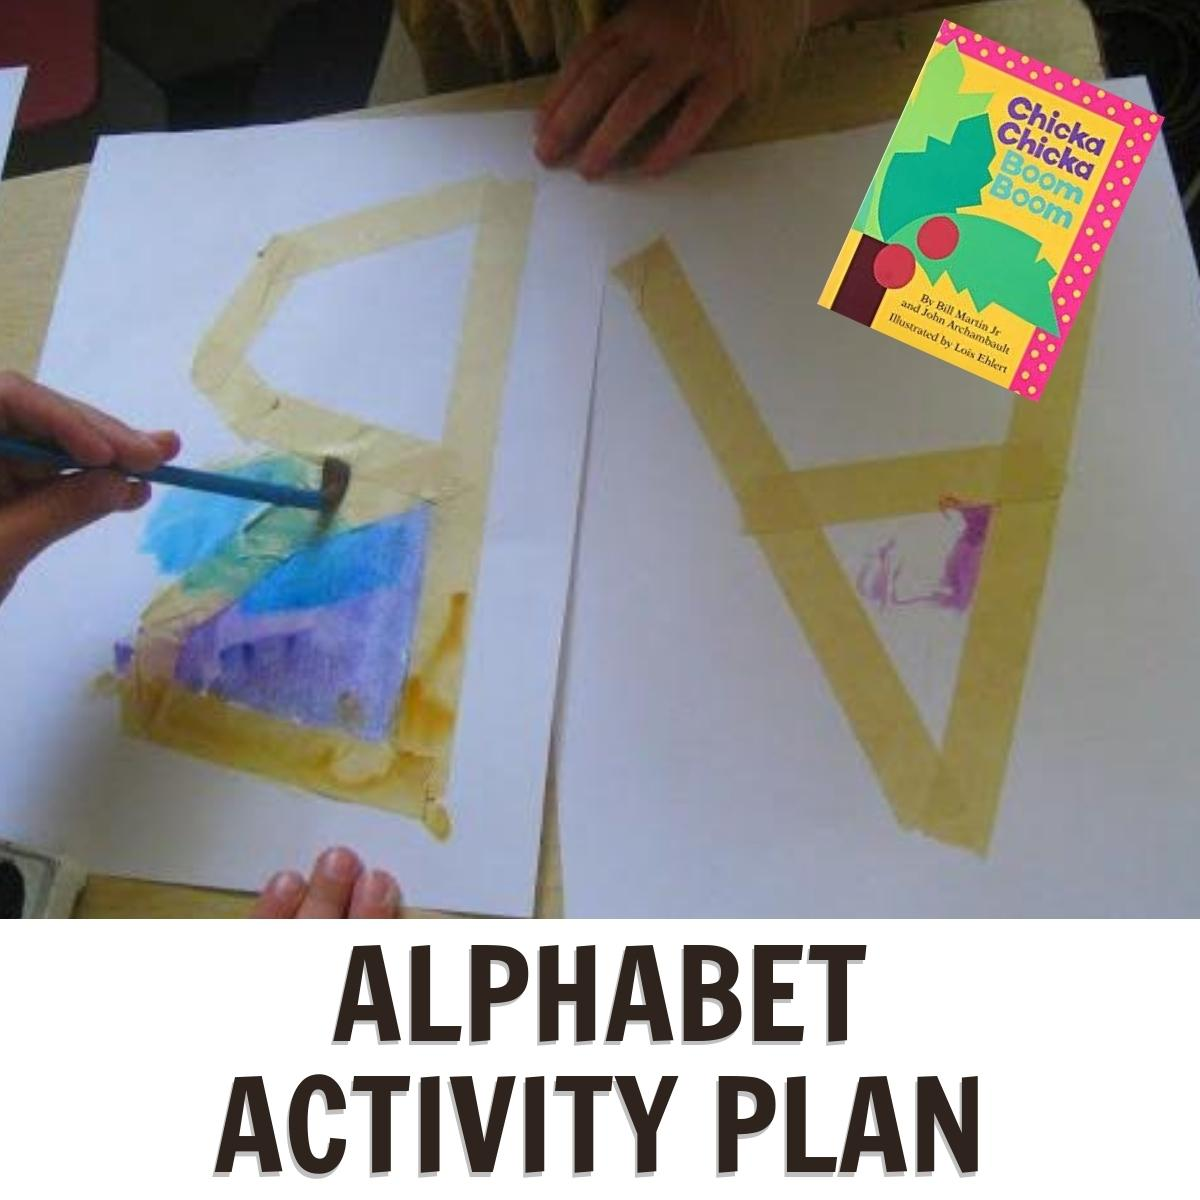 Alphabet Themed Week for Preschoolers Featuring Chicka Chicka Boom Boom